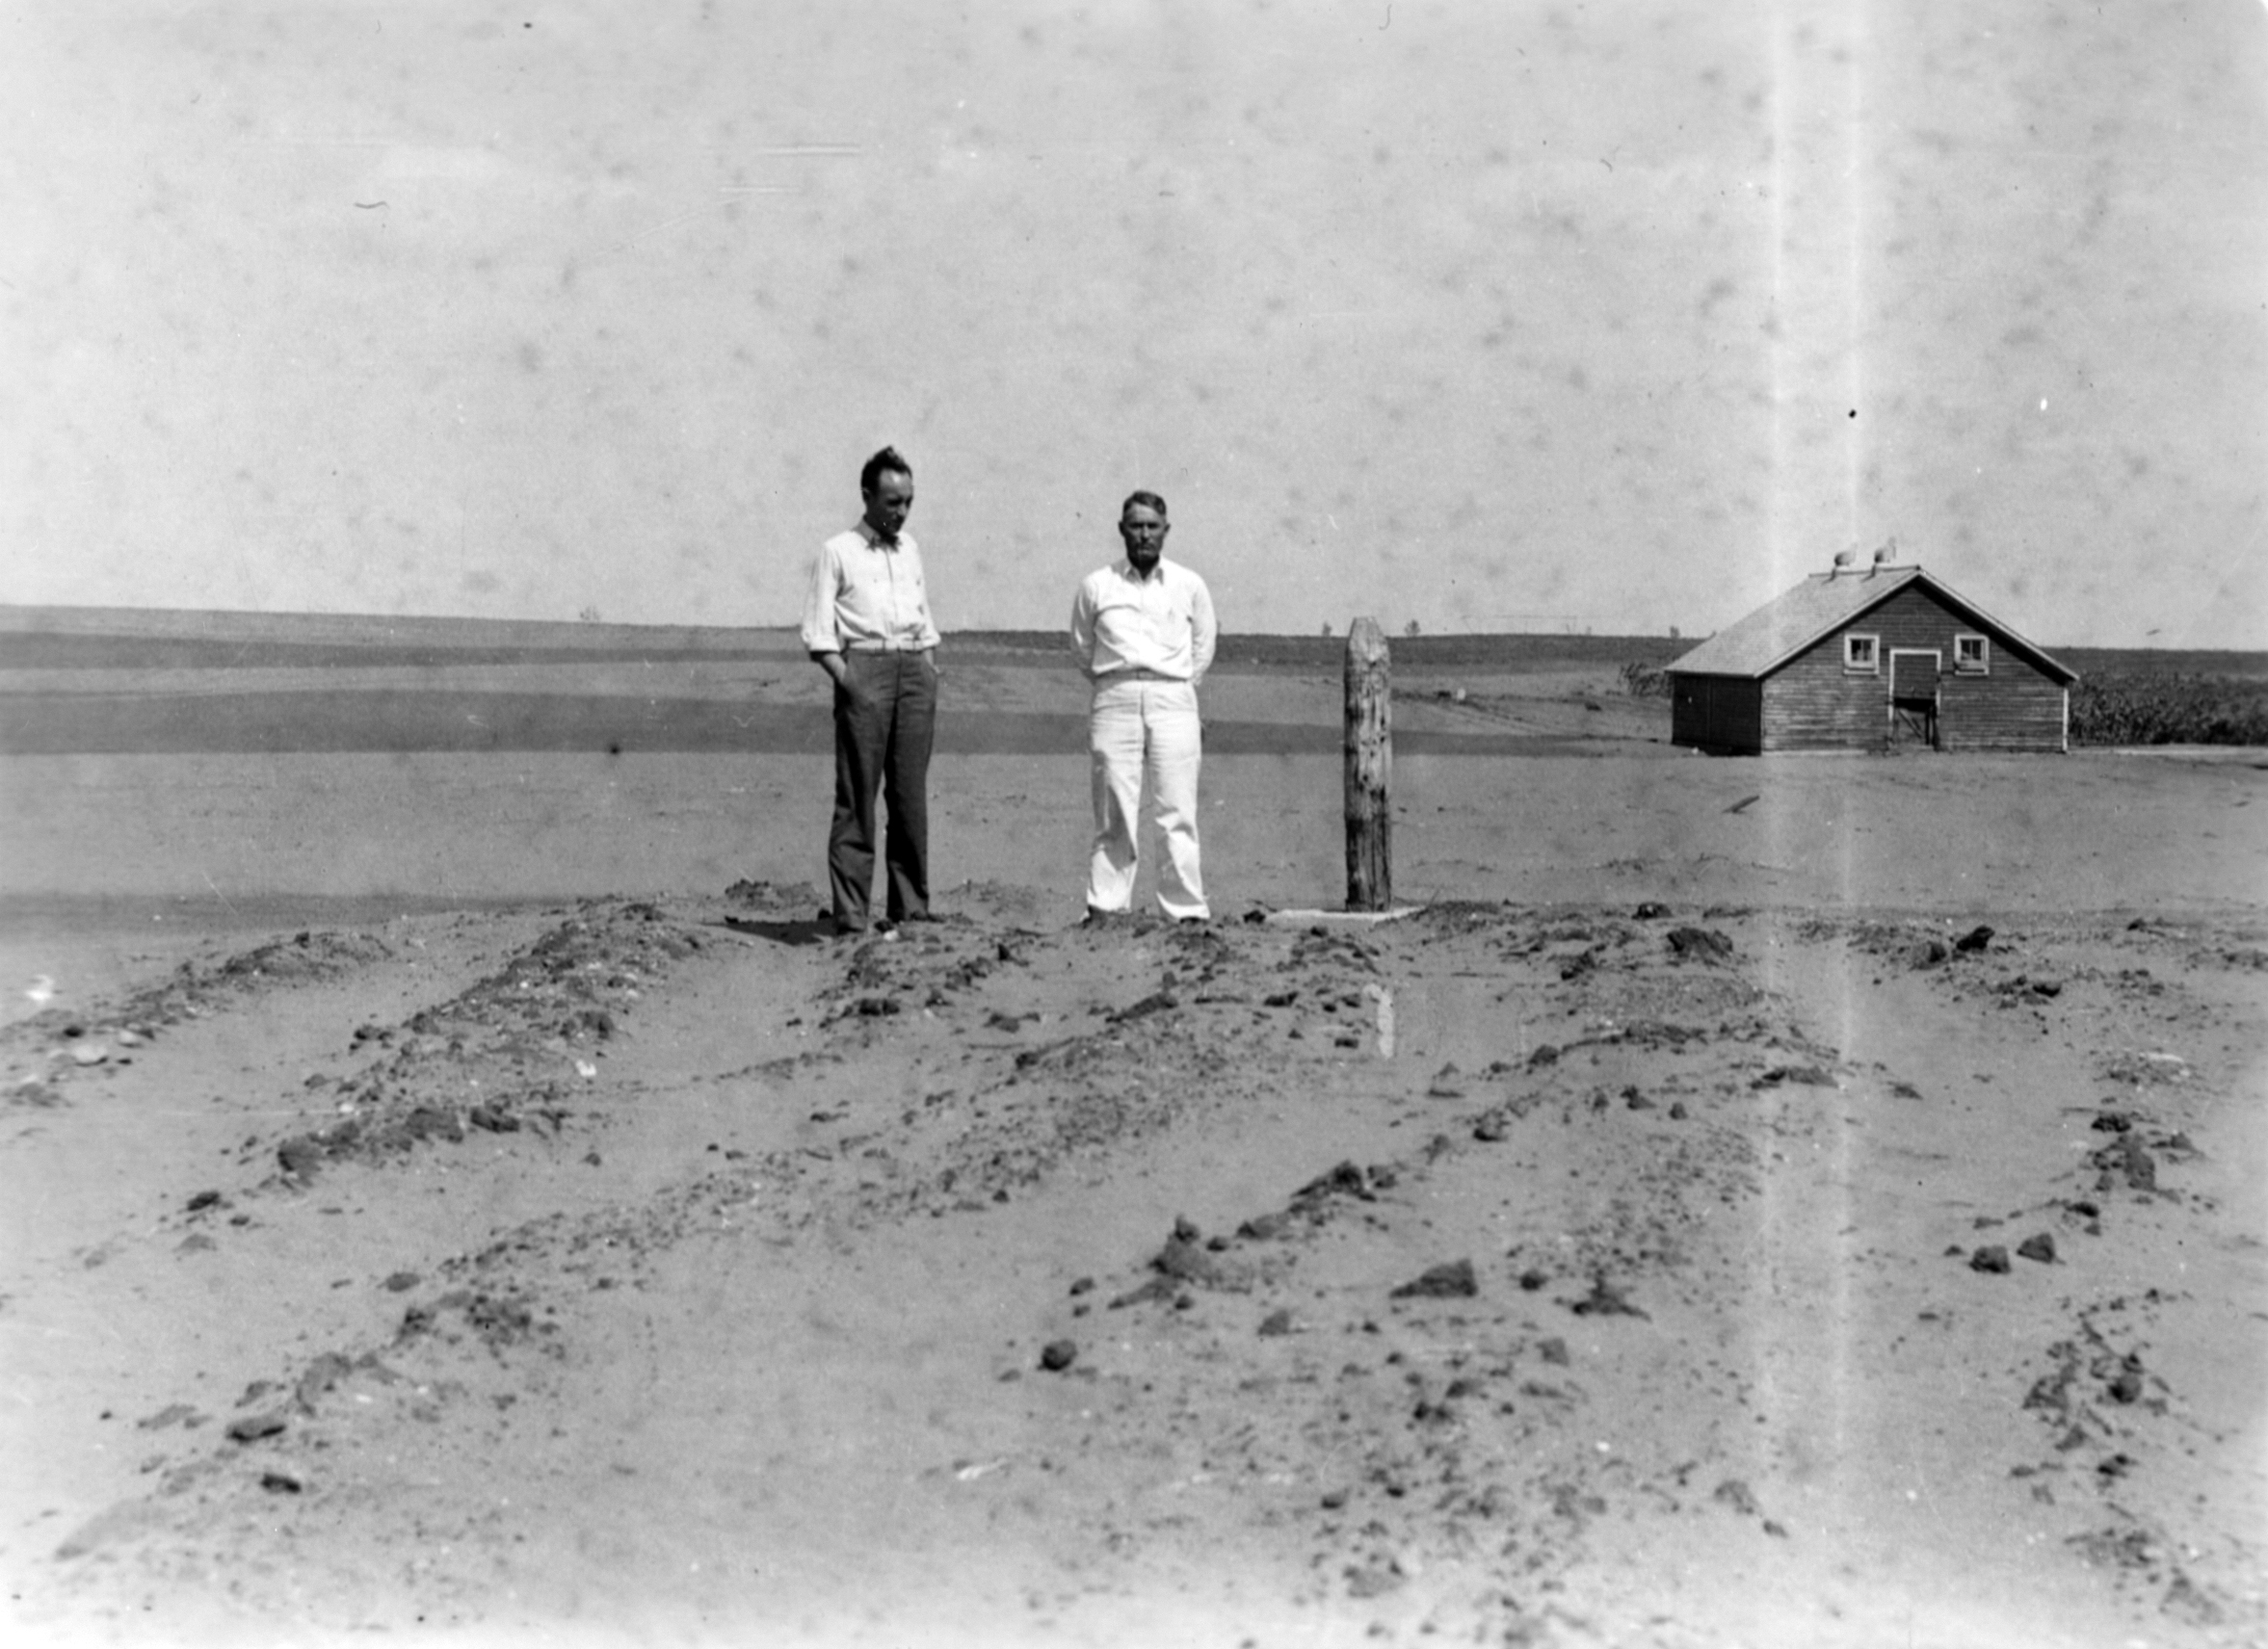 Image - G. A. Barnes & H. J. Clemmer SCS at Karnstrum farm near Wolsey July 20, 1936(1).jpg